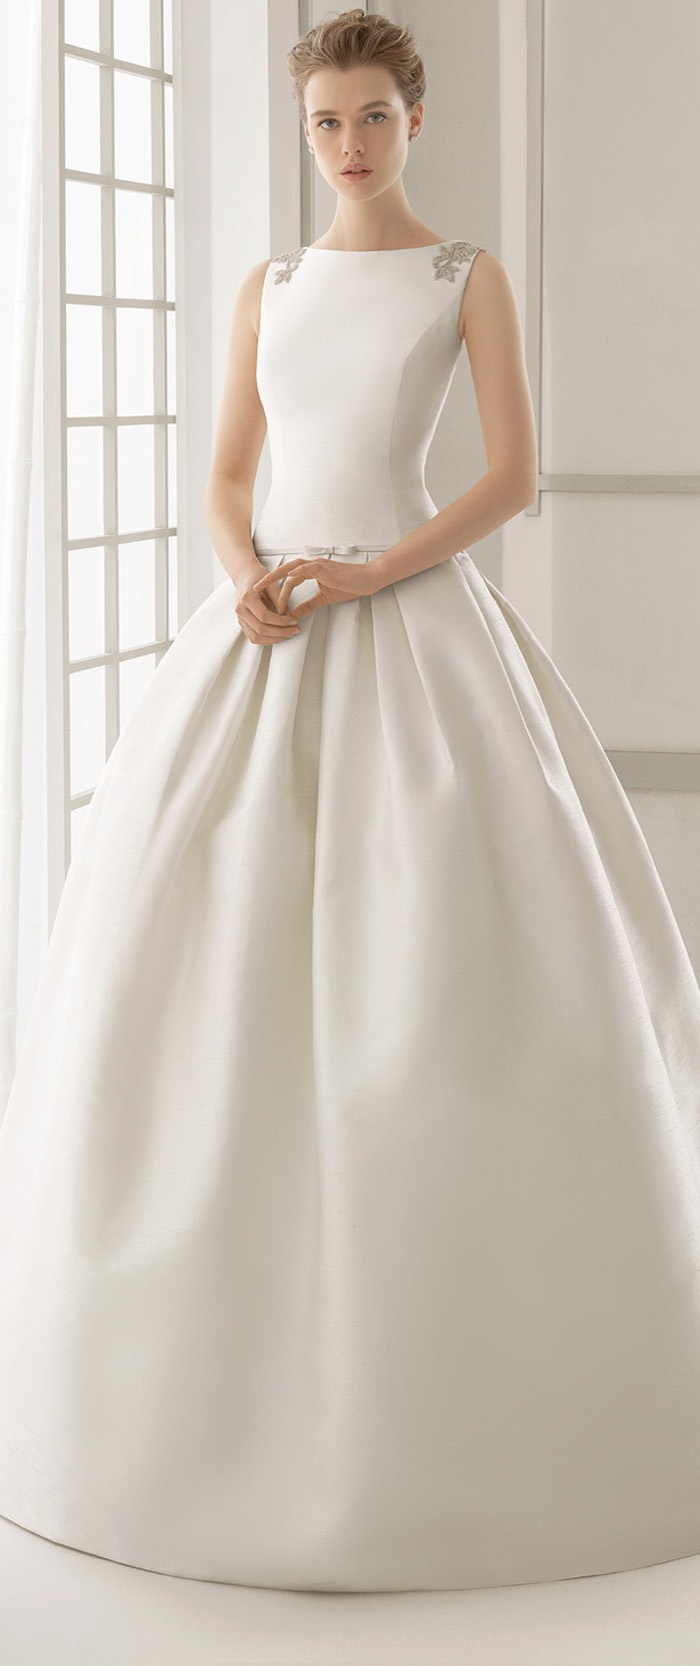 modest-wedding-dresses-3-08292015-km